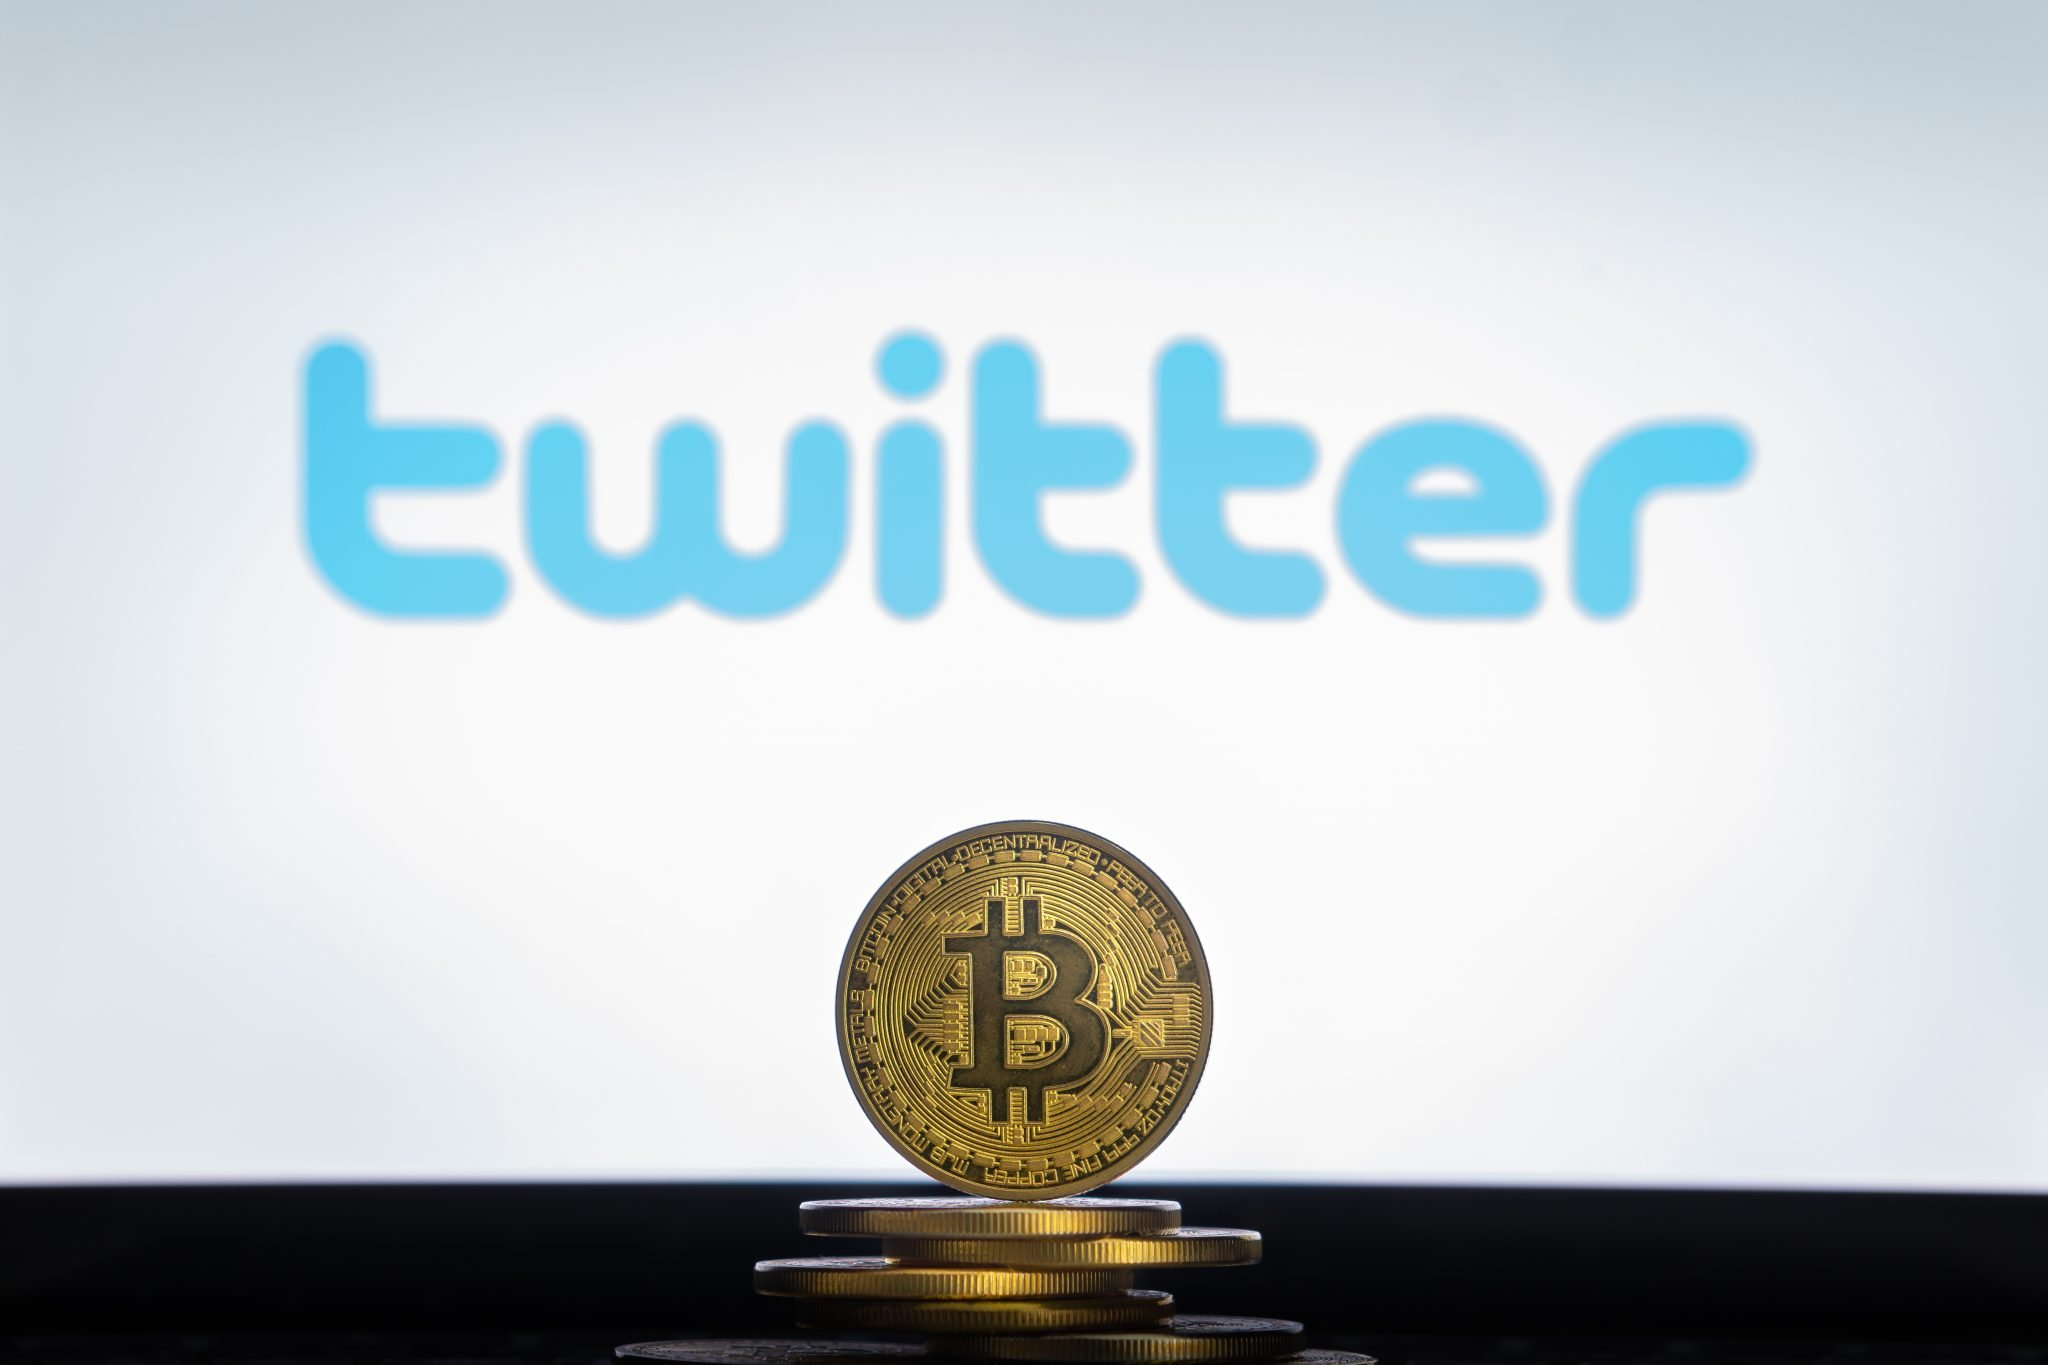 Twitter logo on a computer screen with a stack of Bitcoin cryptocurency coins.